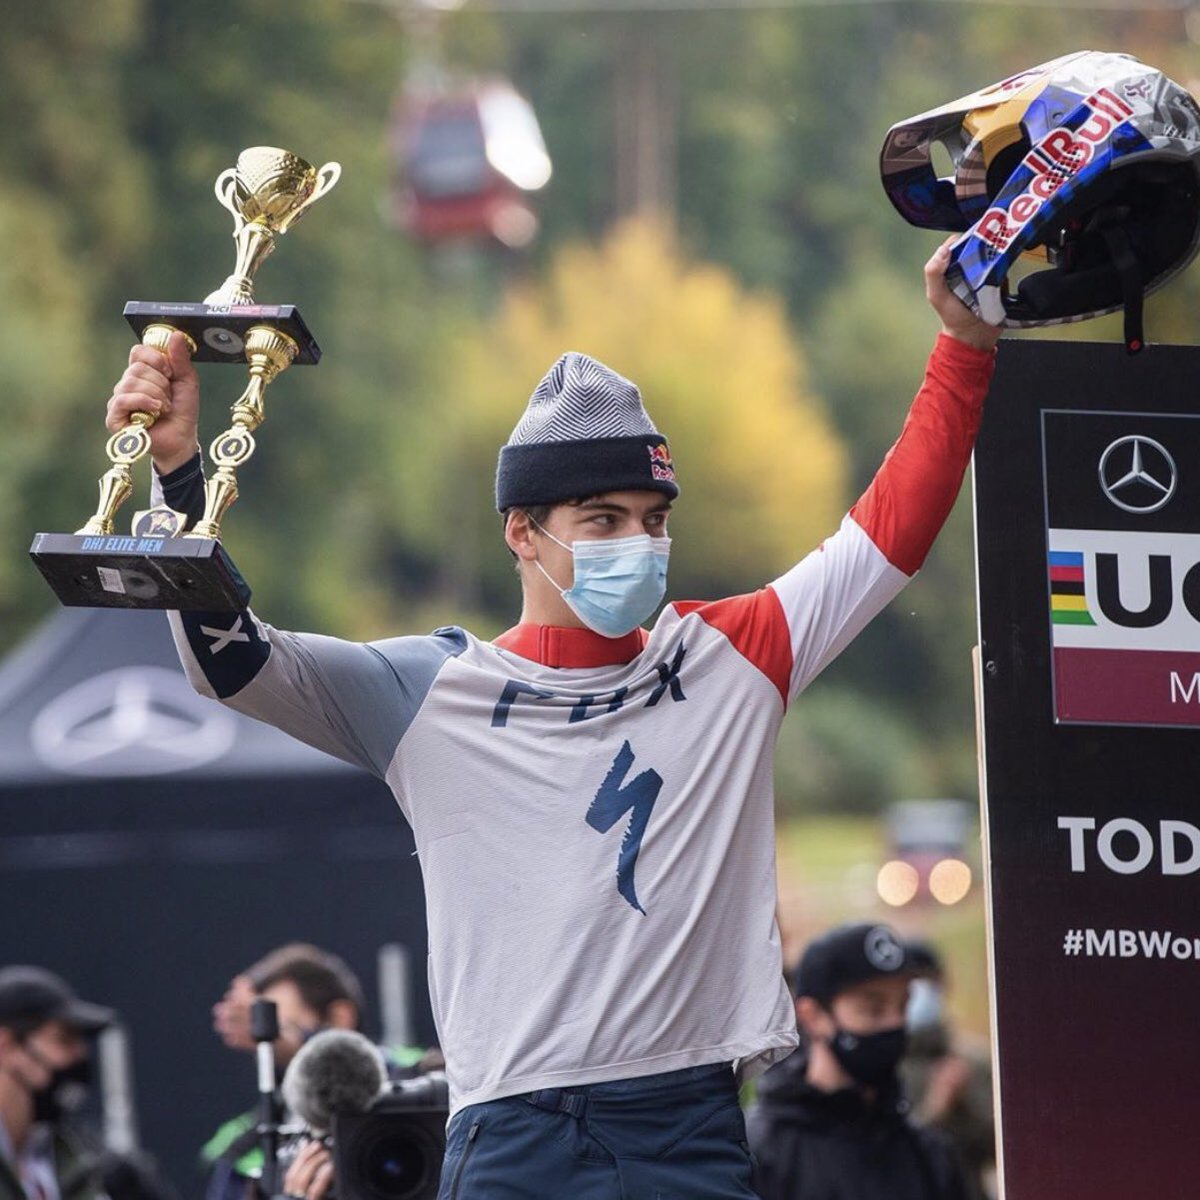 test Twitter Media - First podium of the season 🏆  Finn Iles finishes fourth in Maribor at the second round of the DH World Cup 👏👏 https://t.co/dchzCck0uv